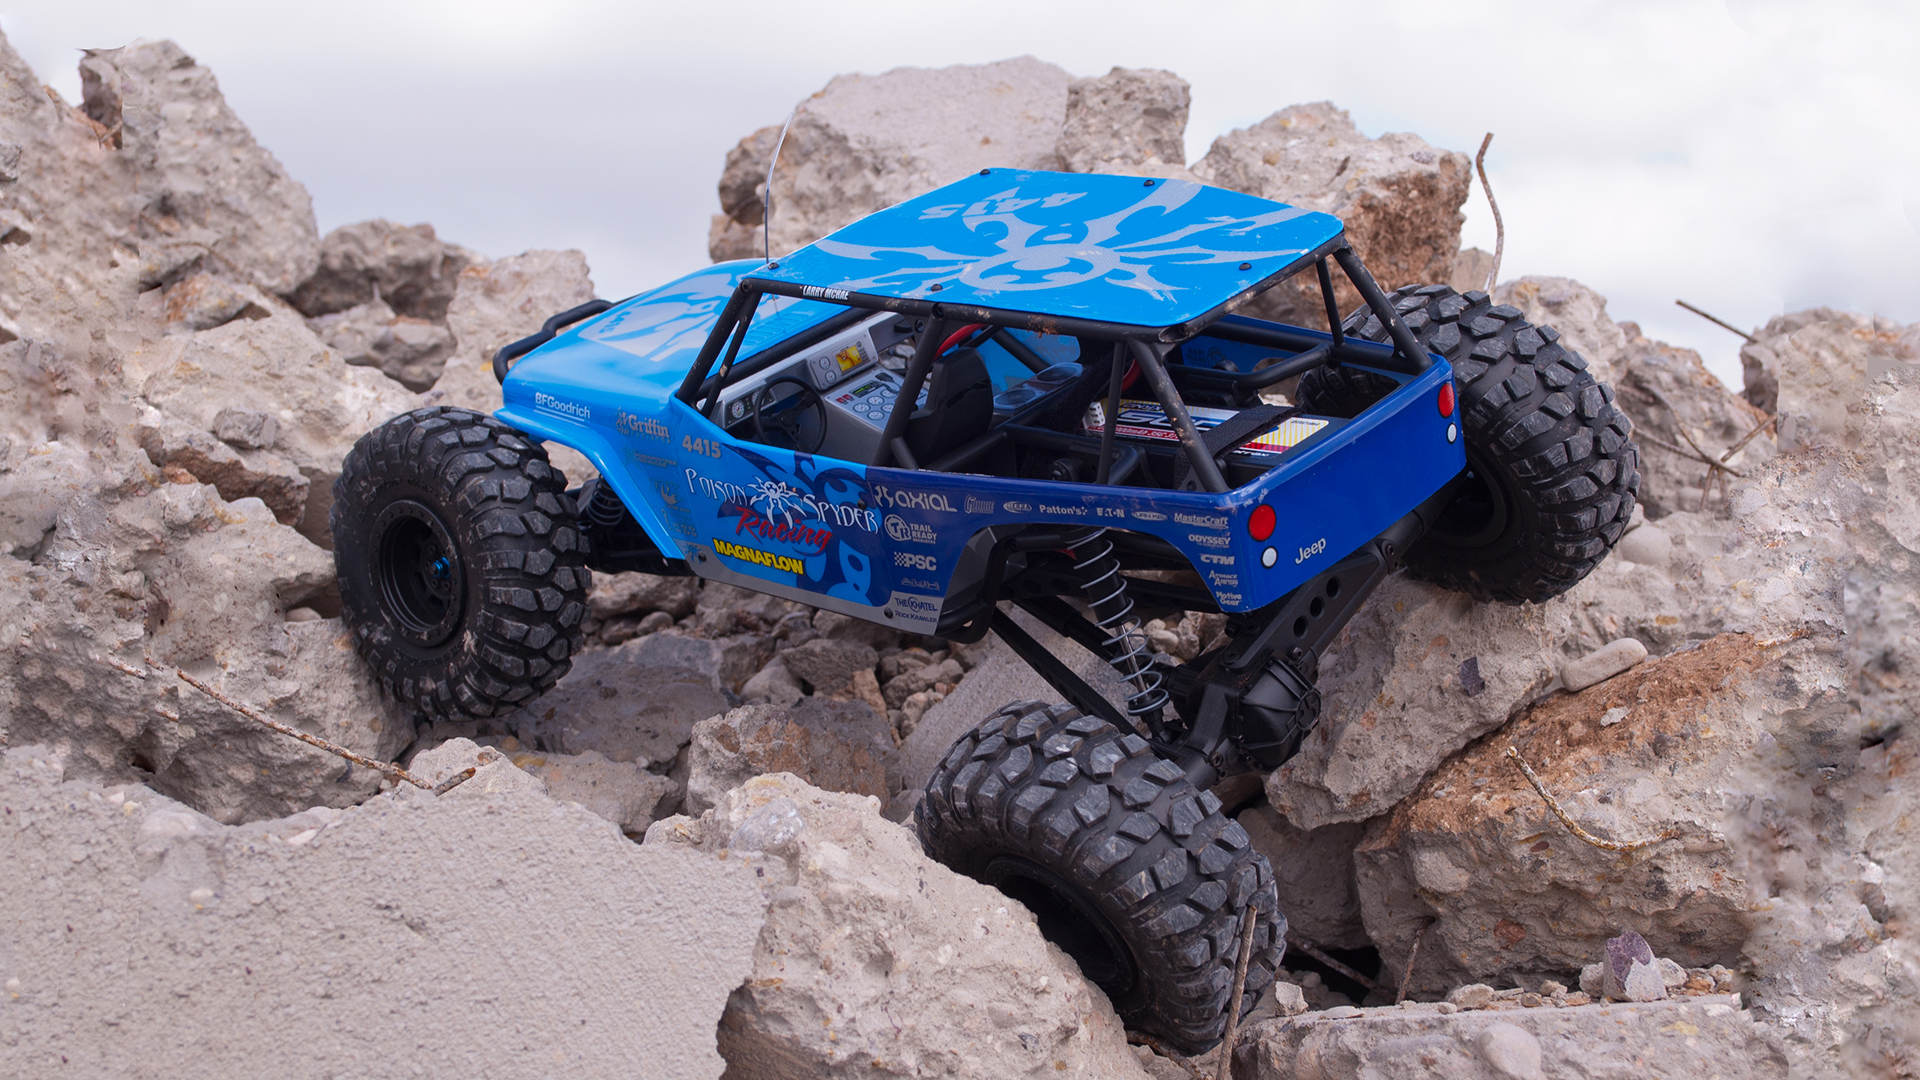 Rock Crawler Wallpaper : How to get into hobby rc driving rock crawlers tested